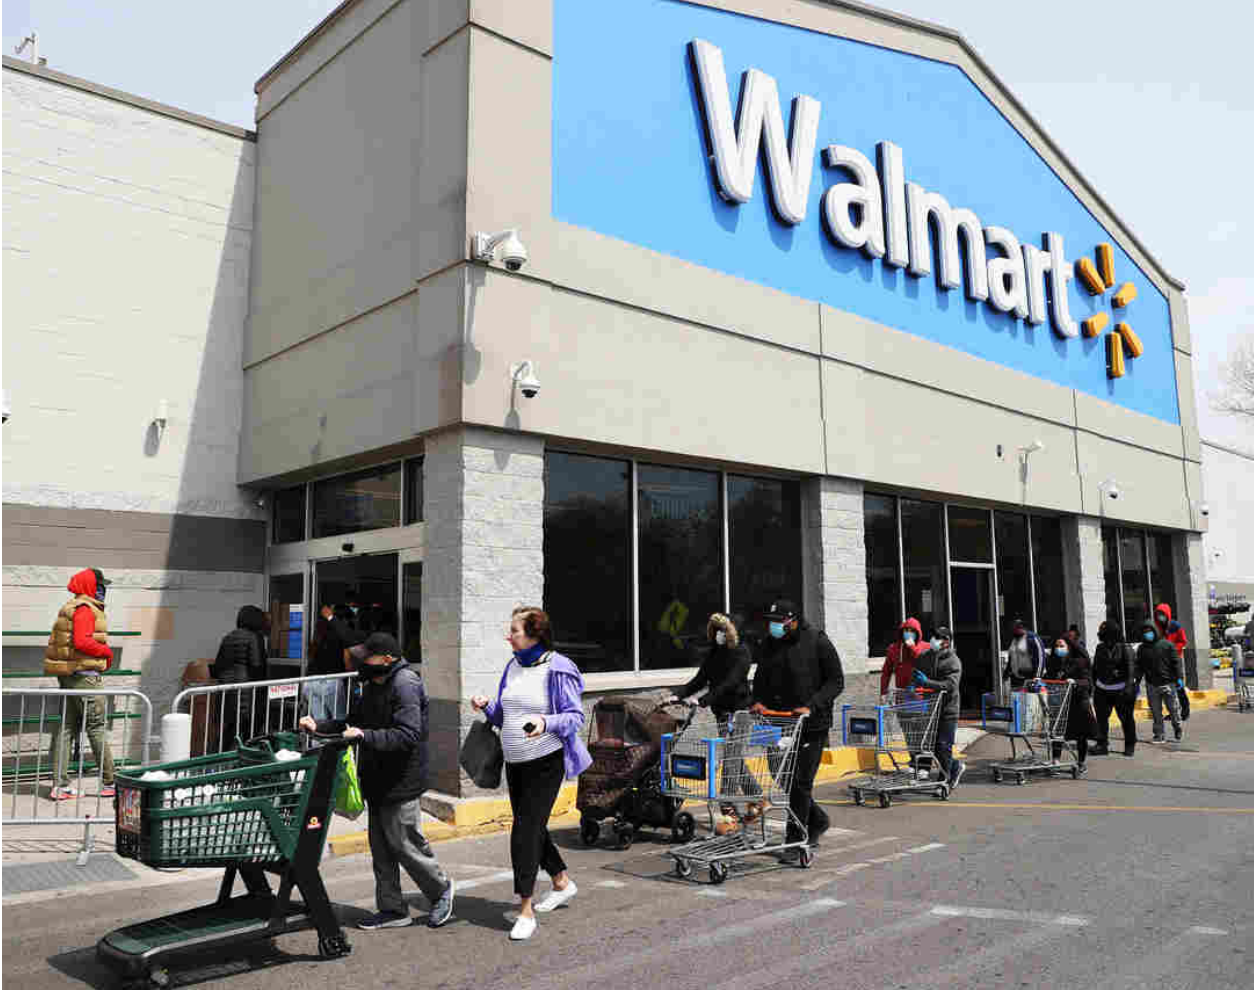 Walmart, Sam's Club, & Best Buy require masks in stores, Farfetch x Fenty exclusive partnership, Klarna virtual shopping event, Malls rent out parking lots